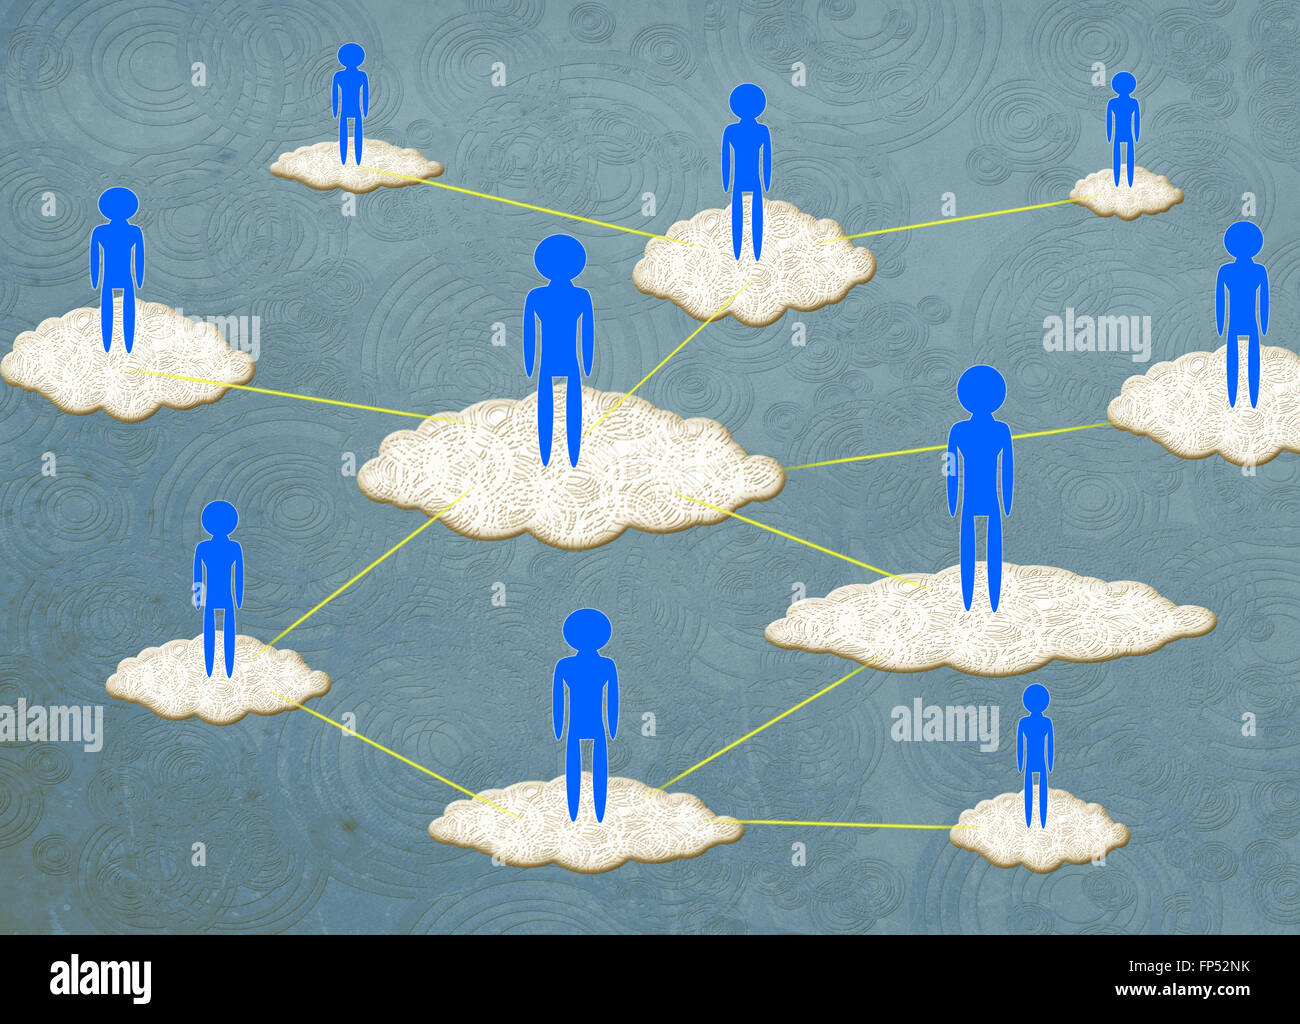 Cloud Computing Konzept digitale Illustration Stockbild